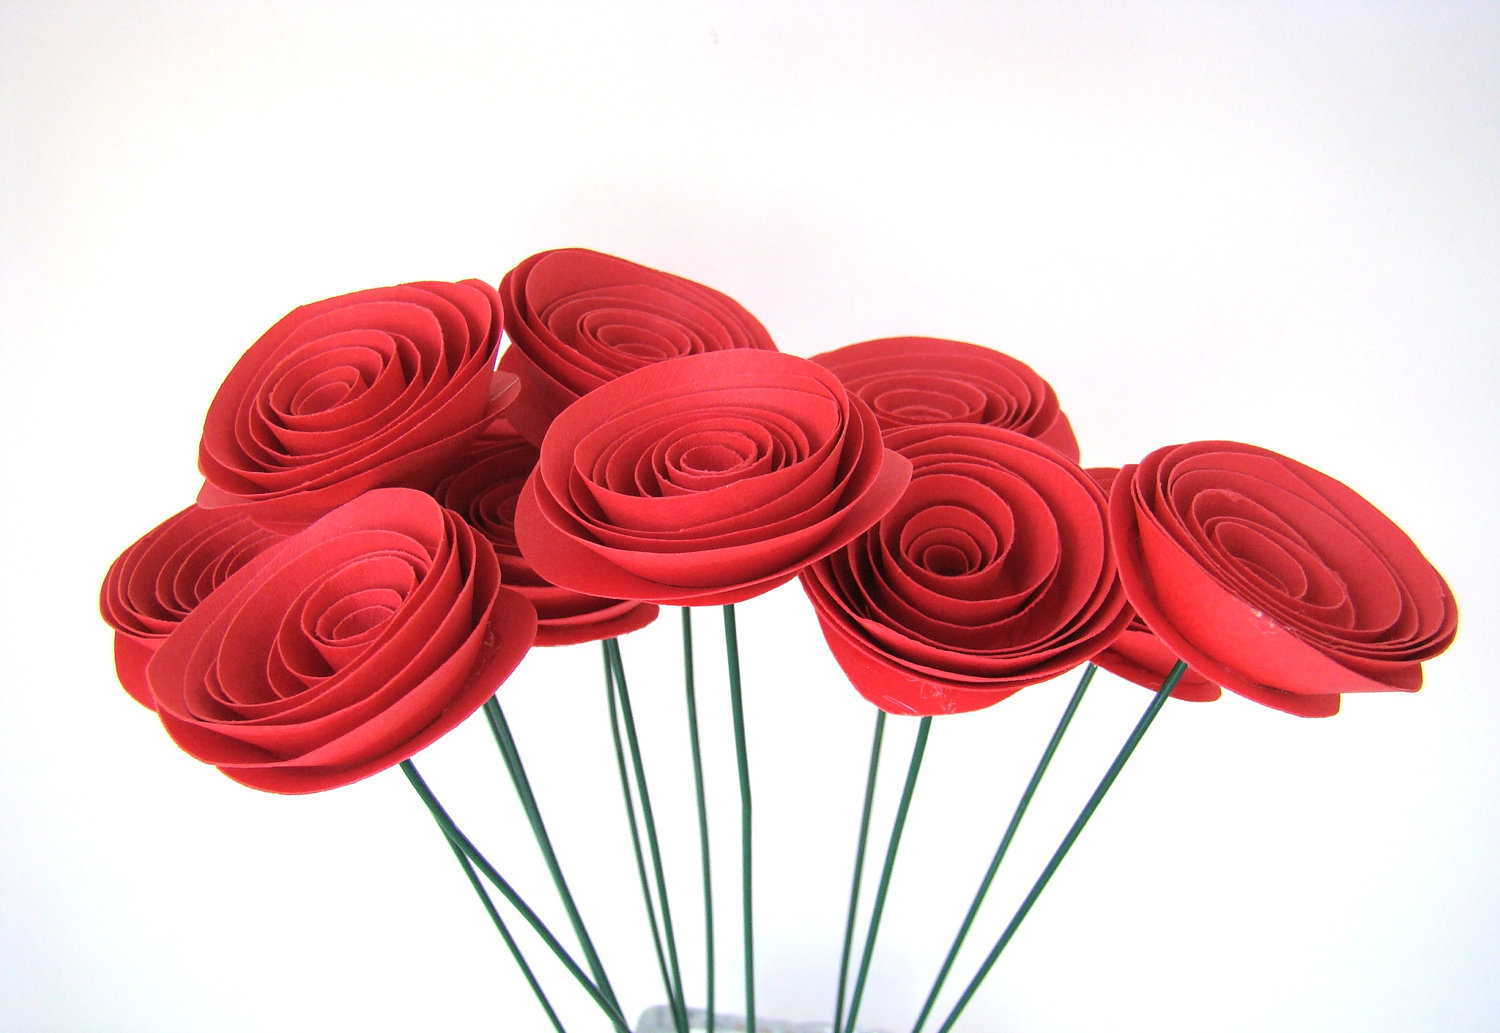 Large red roses one dozen spiral paper roses with stems origami large red roses one dozen spiral paper roses with stems thumbnail 2 mightylinksfo